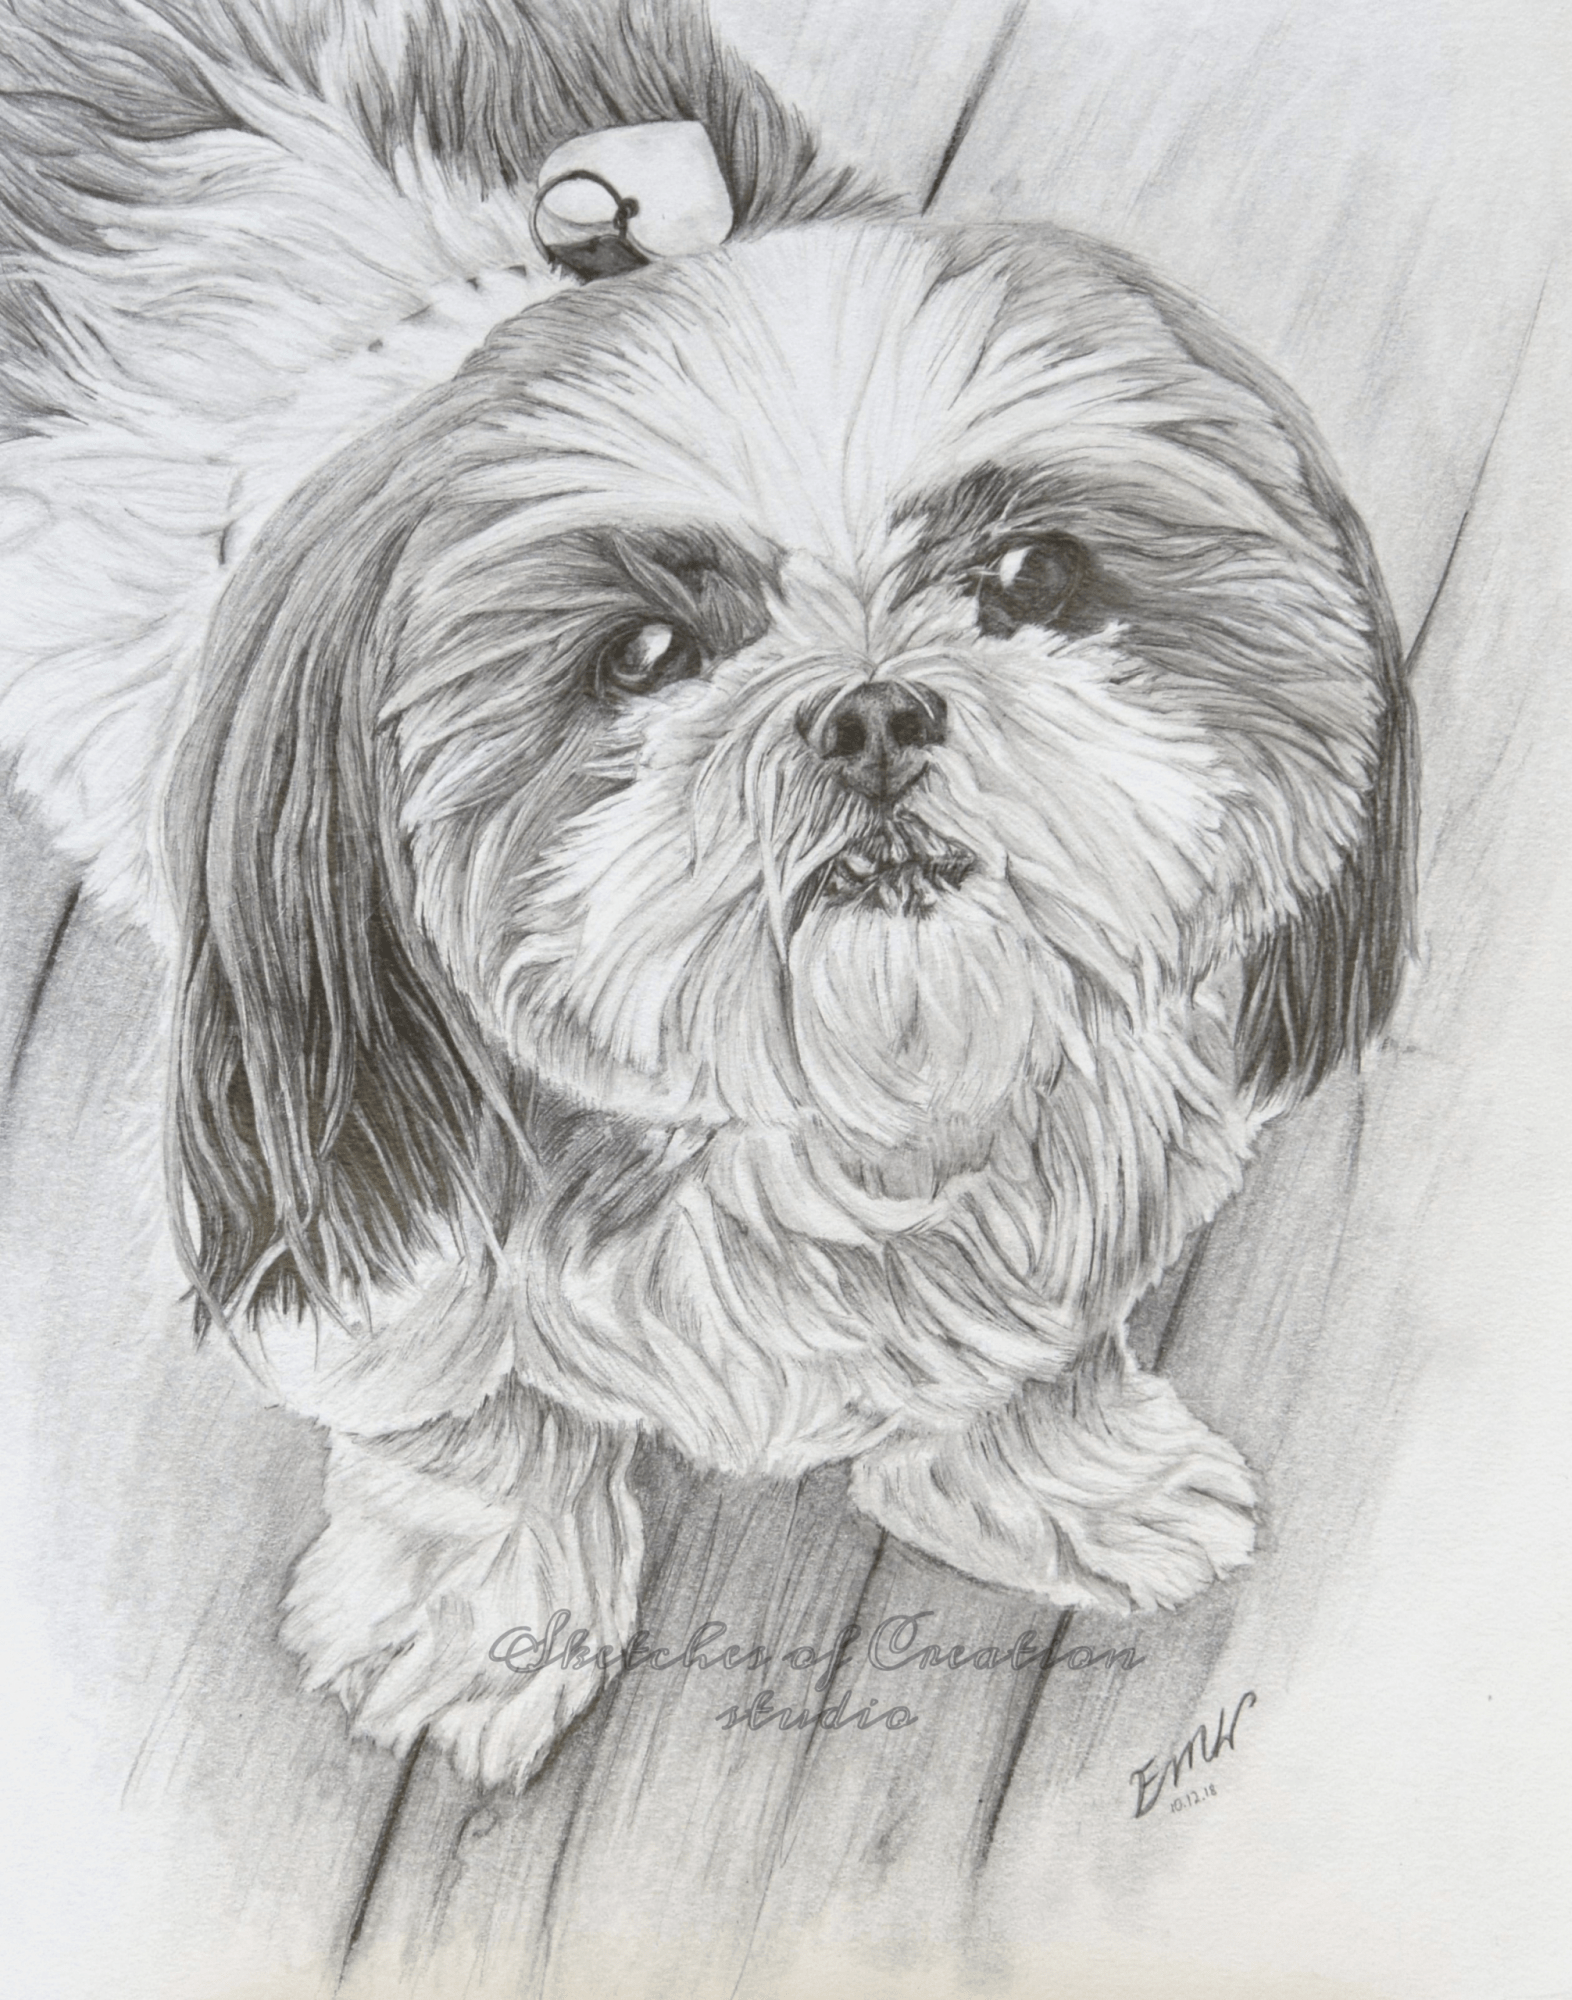 'Macy' a drawing of a shih-tzu. 8x10 inches. Completed October 2018